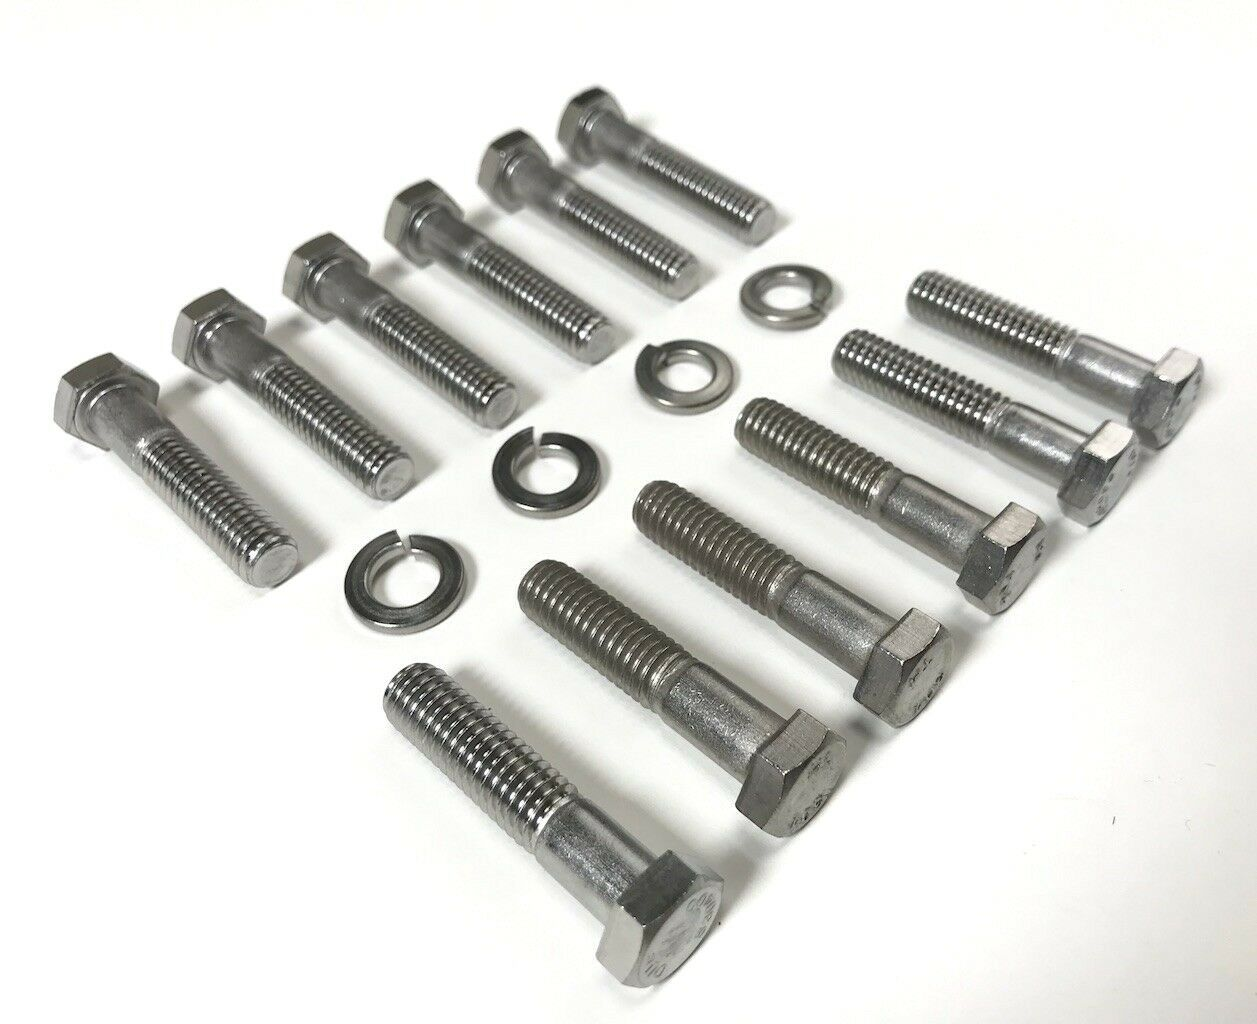 1955 1956 chevy v8 exhaust manifold bolt set stainless steel